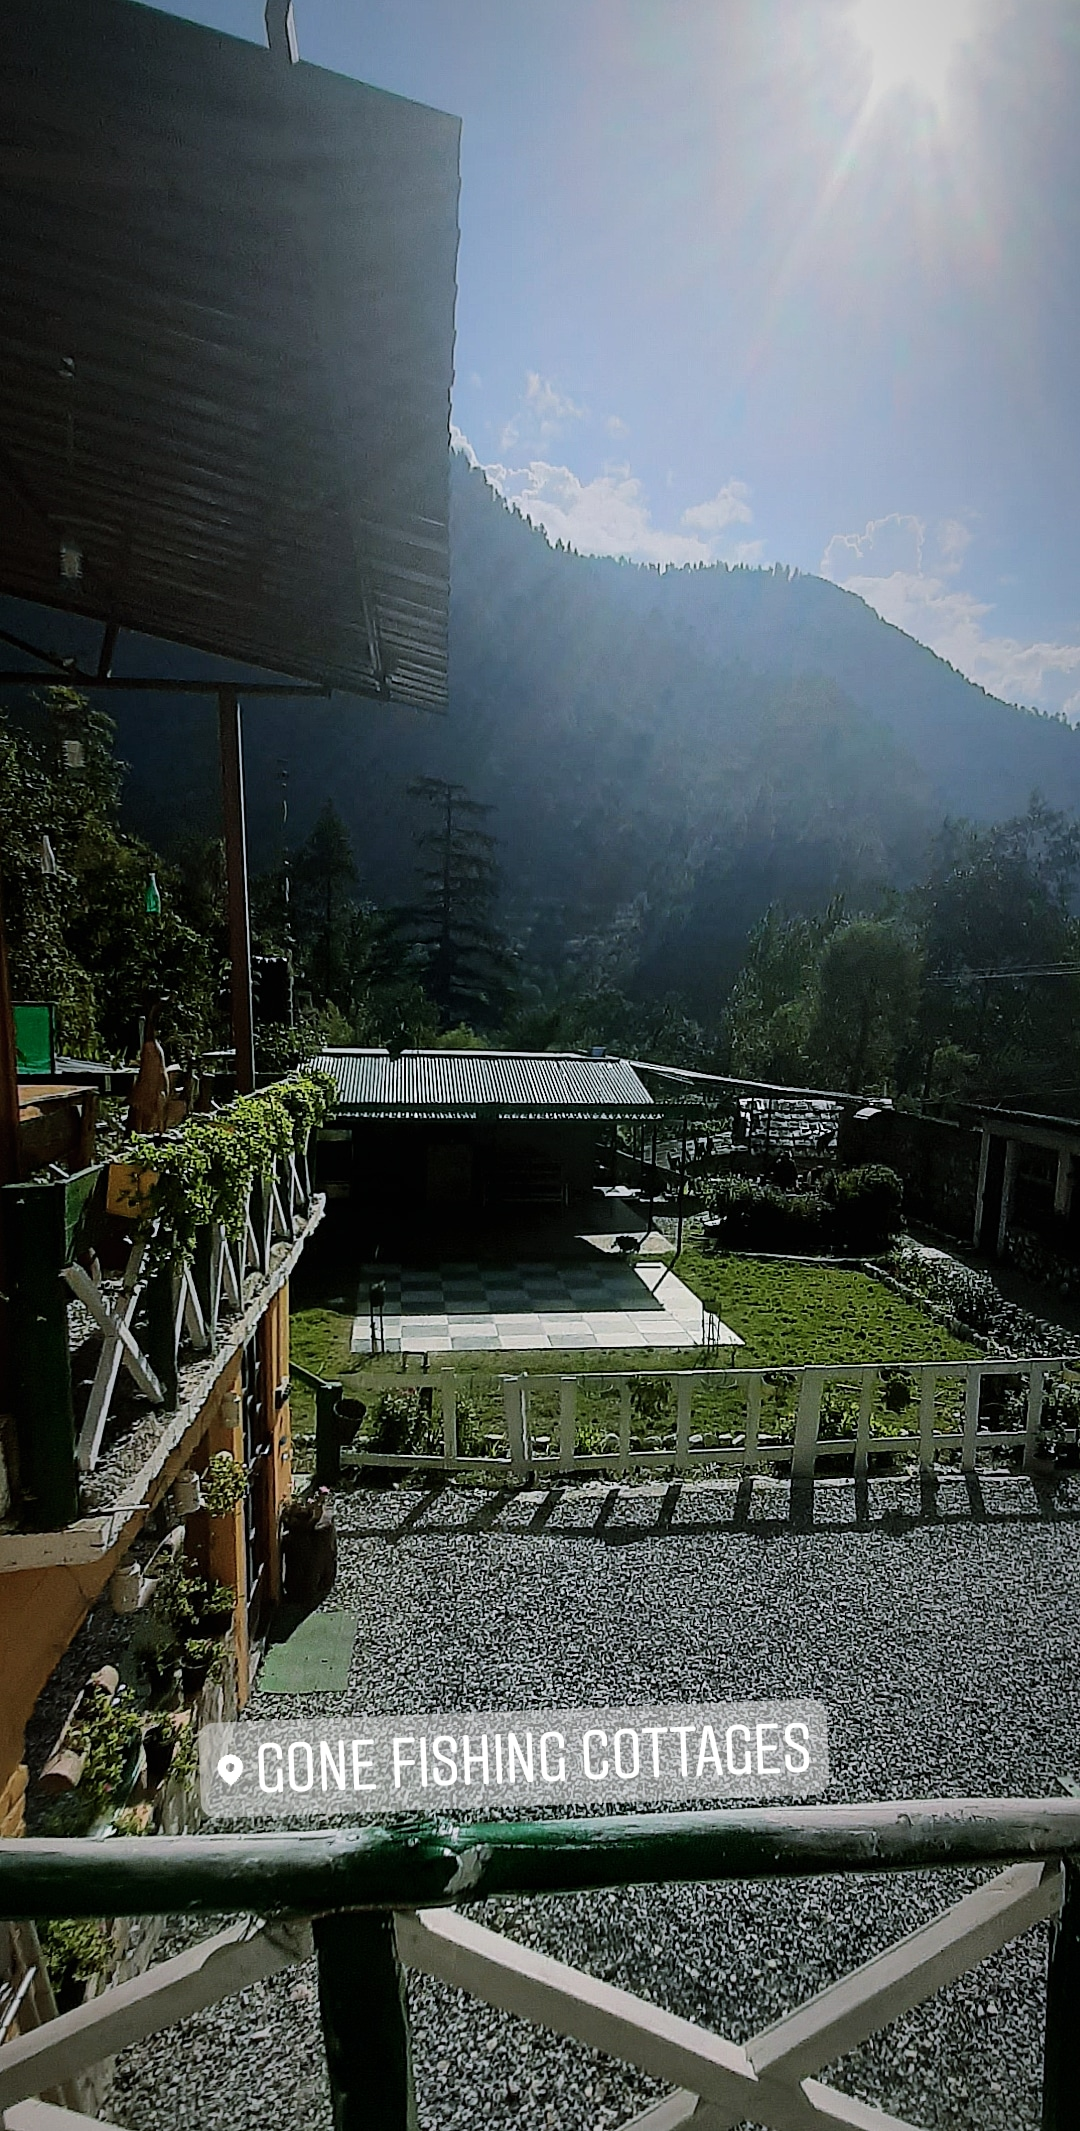 deck-at-gone-fishing-cottages-himachal